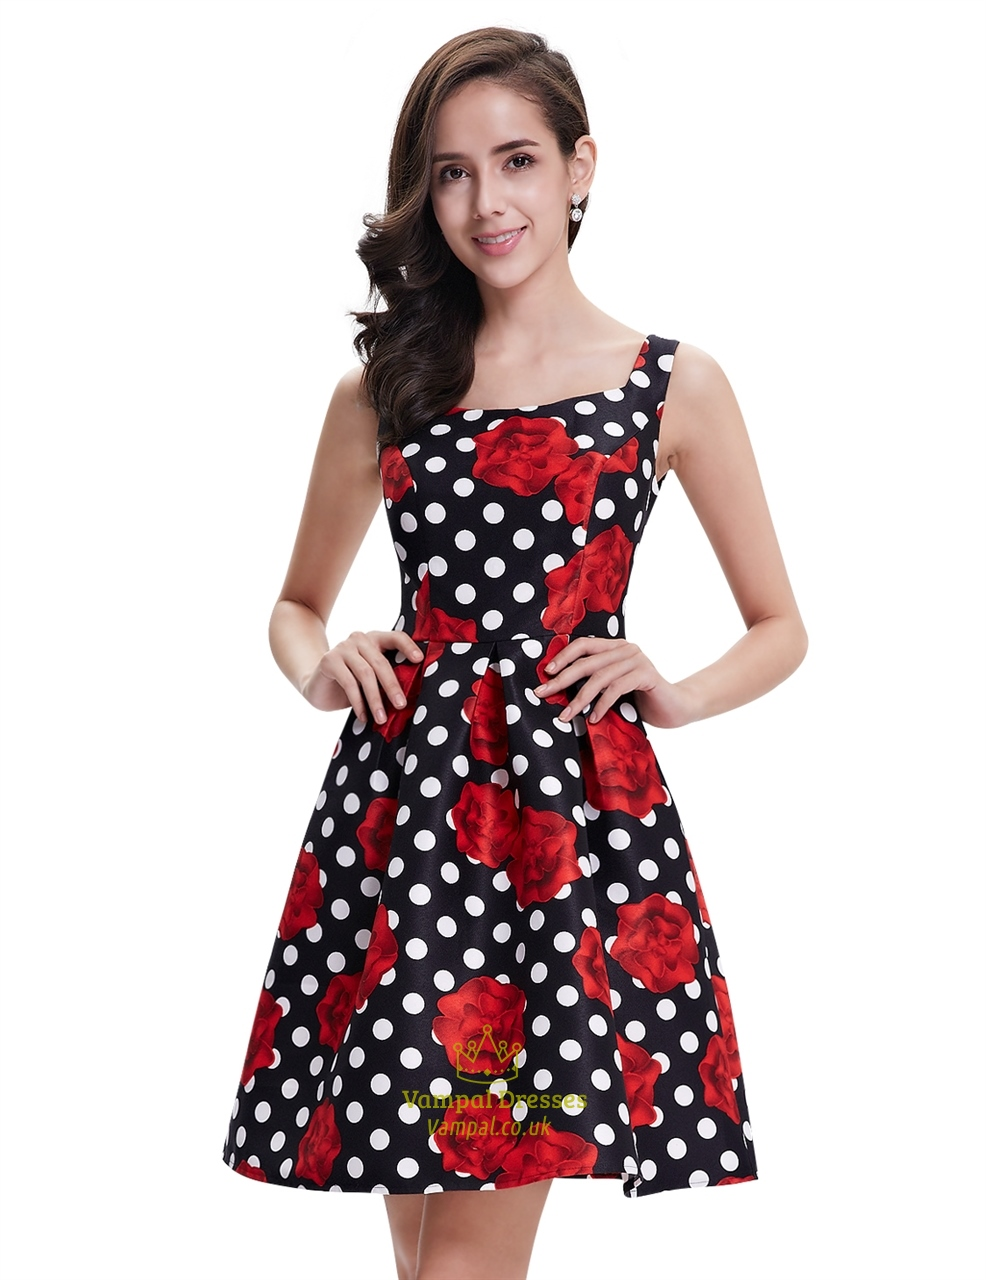 Black And White Polka Dot Summer Casual Dress With Floral Print ...